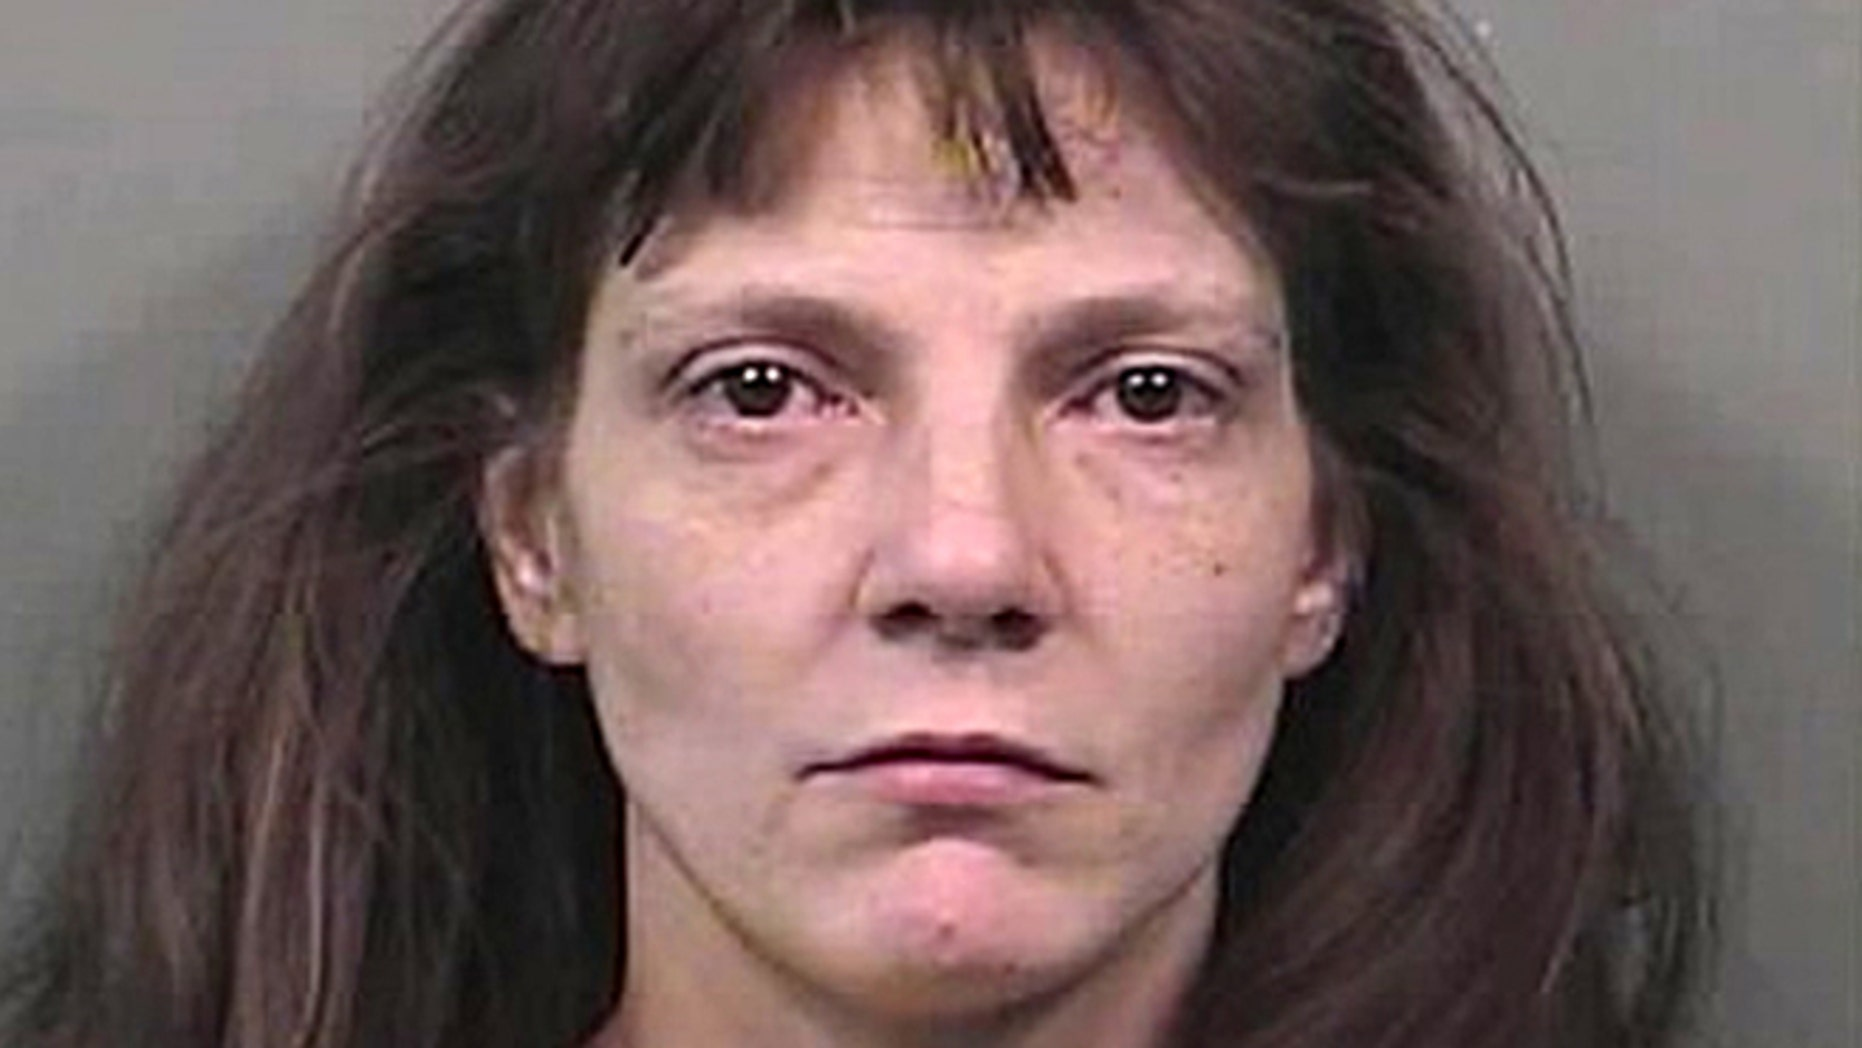 Indiana 35-year-old Bonita Lynn Vela has been arrested on preliminary charges of battery with a deadly weapon and criminal confinement with a deadly weapon.